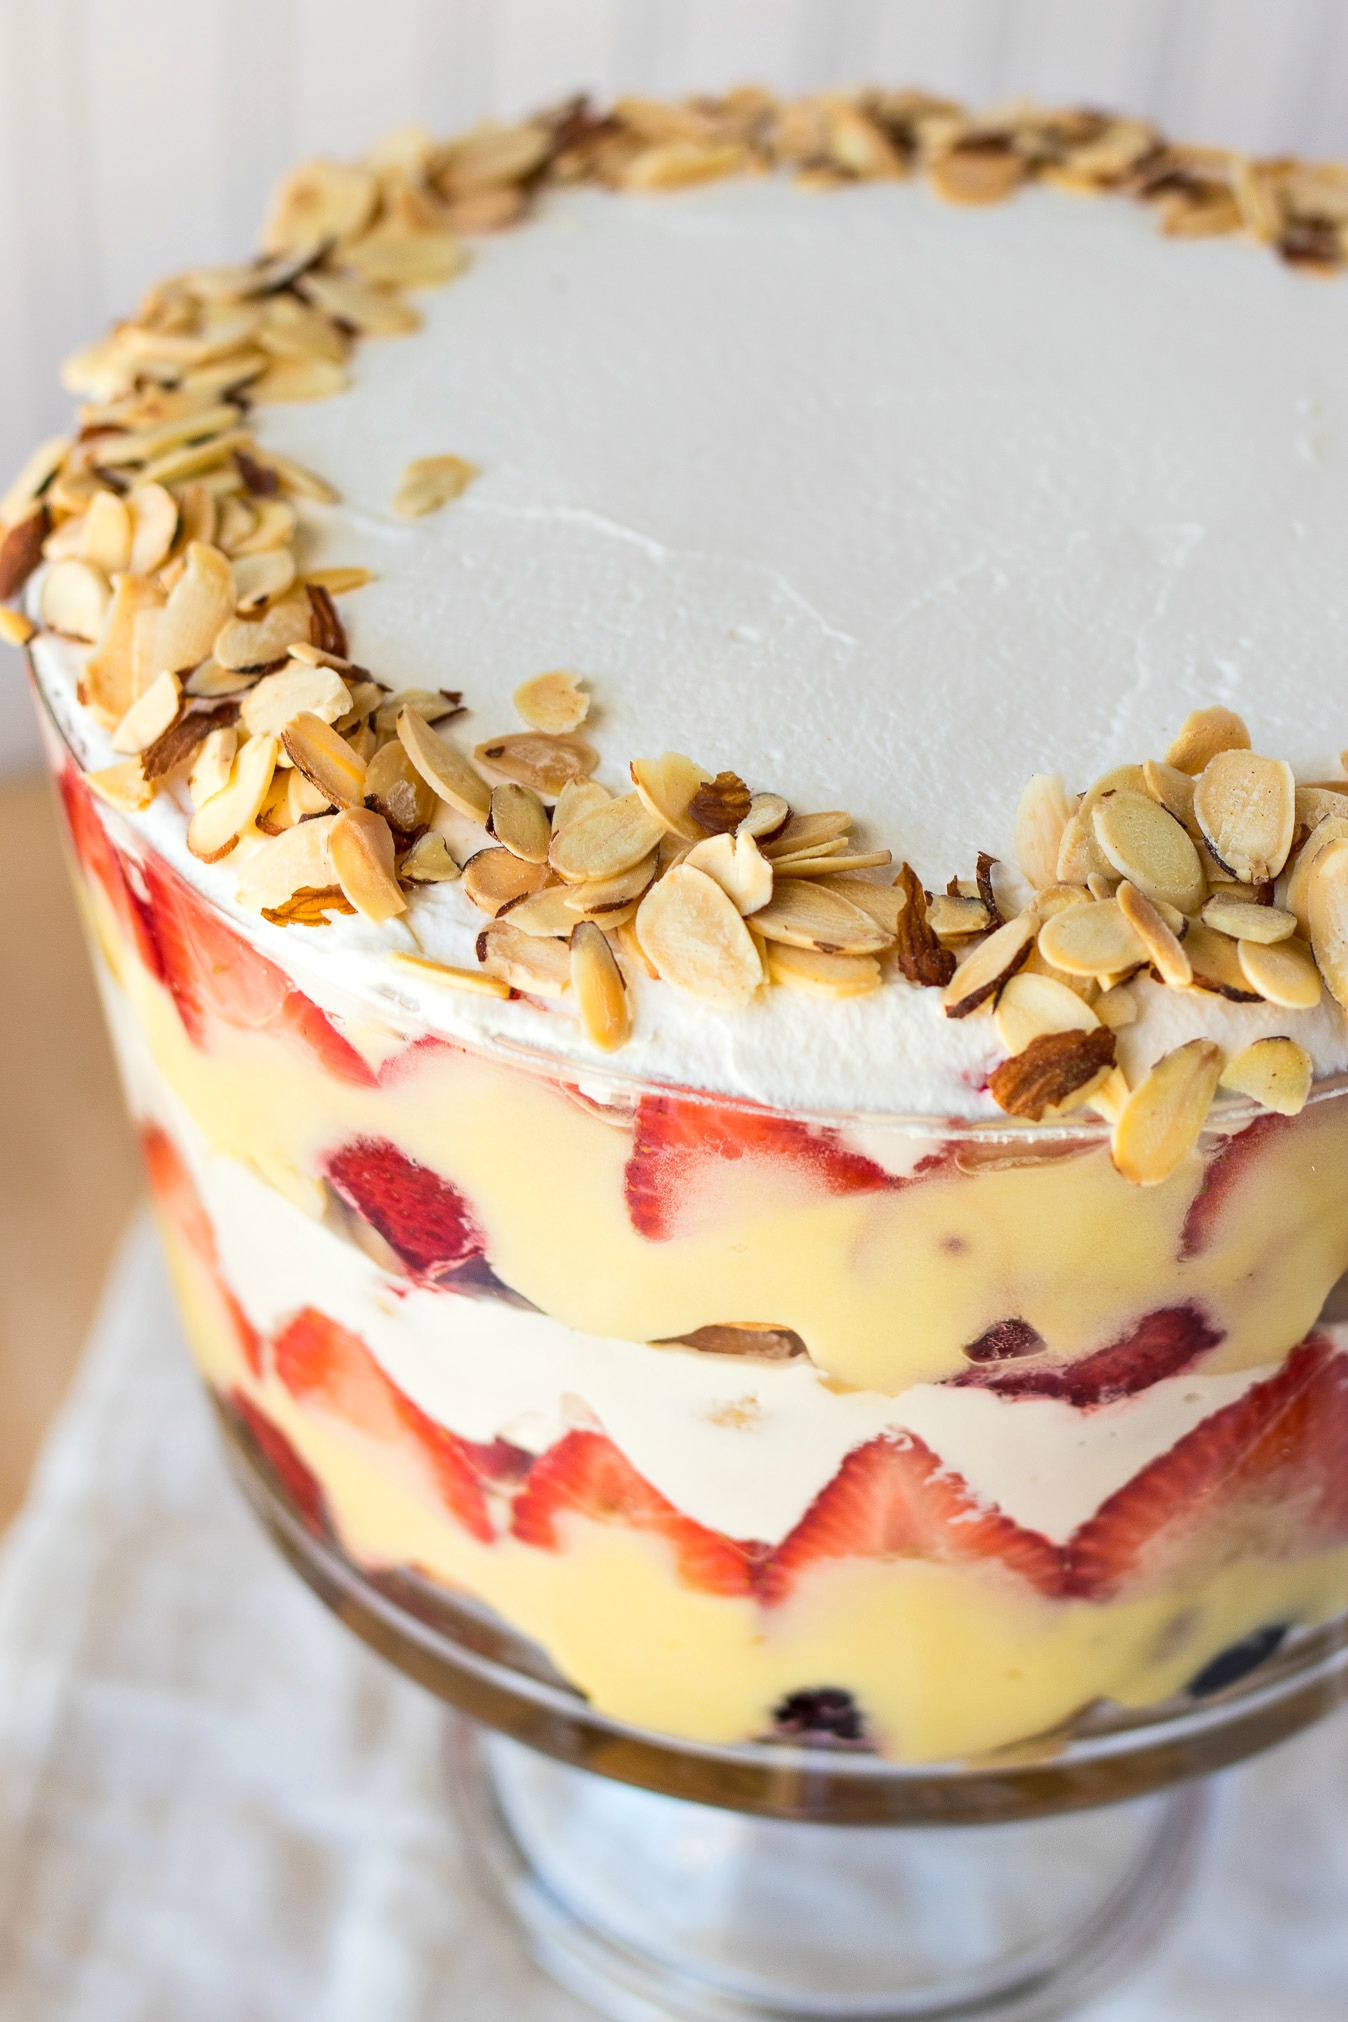 Traditional English Trifle This Traditional English Trifle Is A Layered Dessert Made With Ladyfingers Soaked In Sherry Fresh Berries Vanilla Pudding And Fresh Whipped Cream The Combination Of These Flavors And